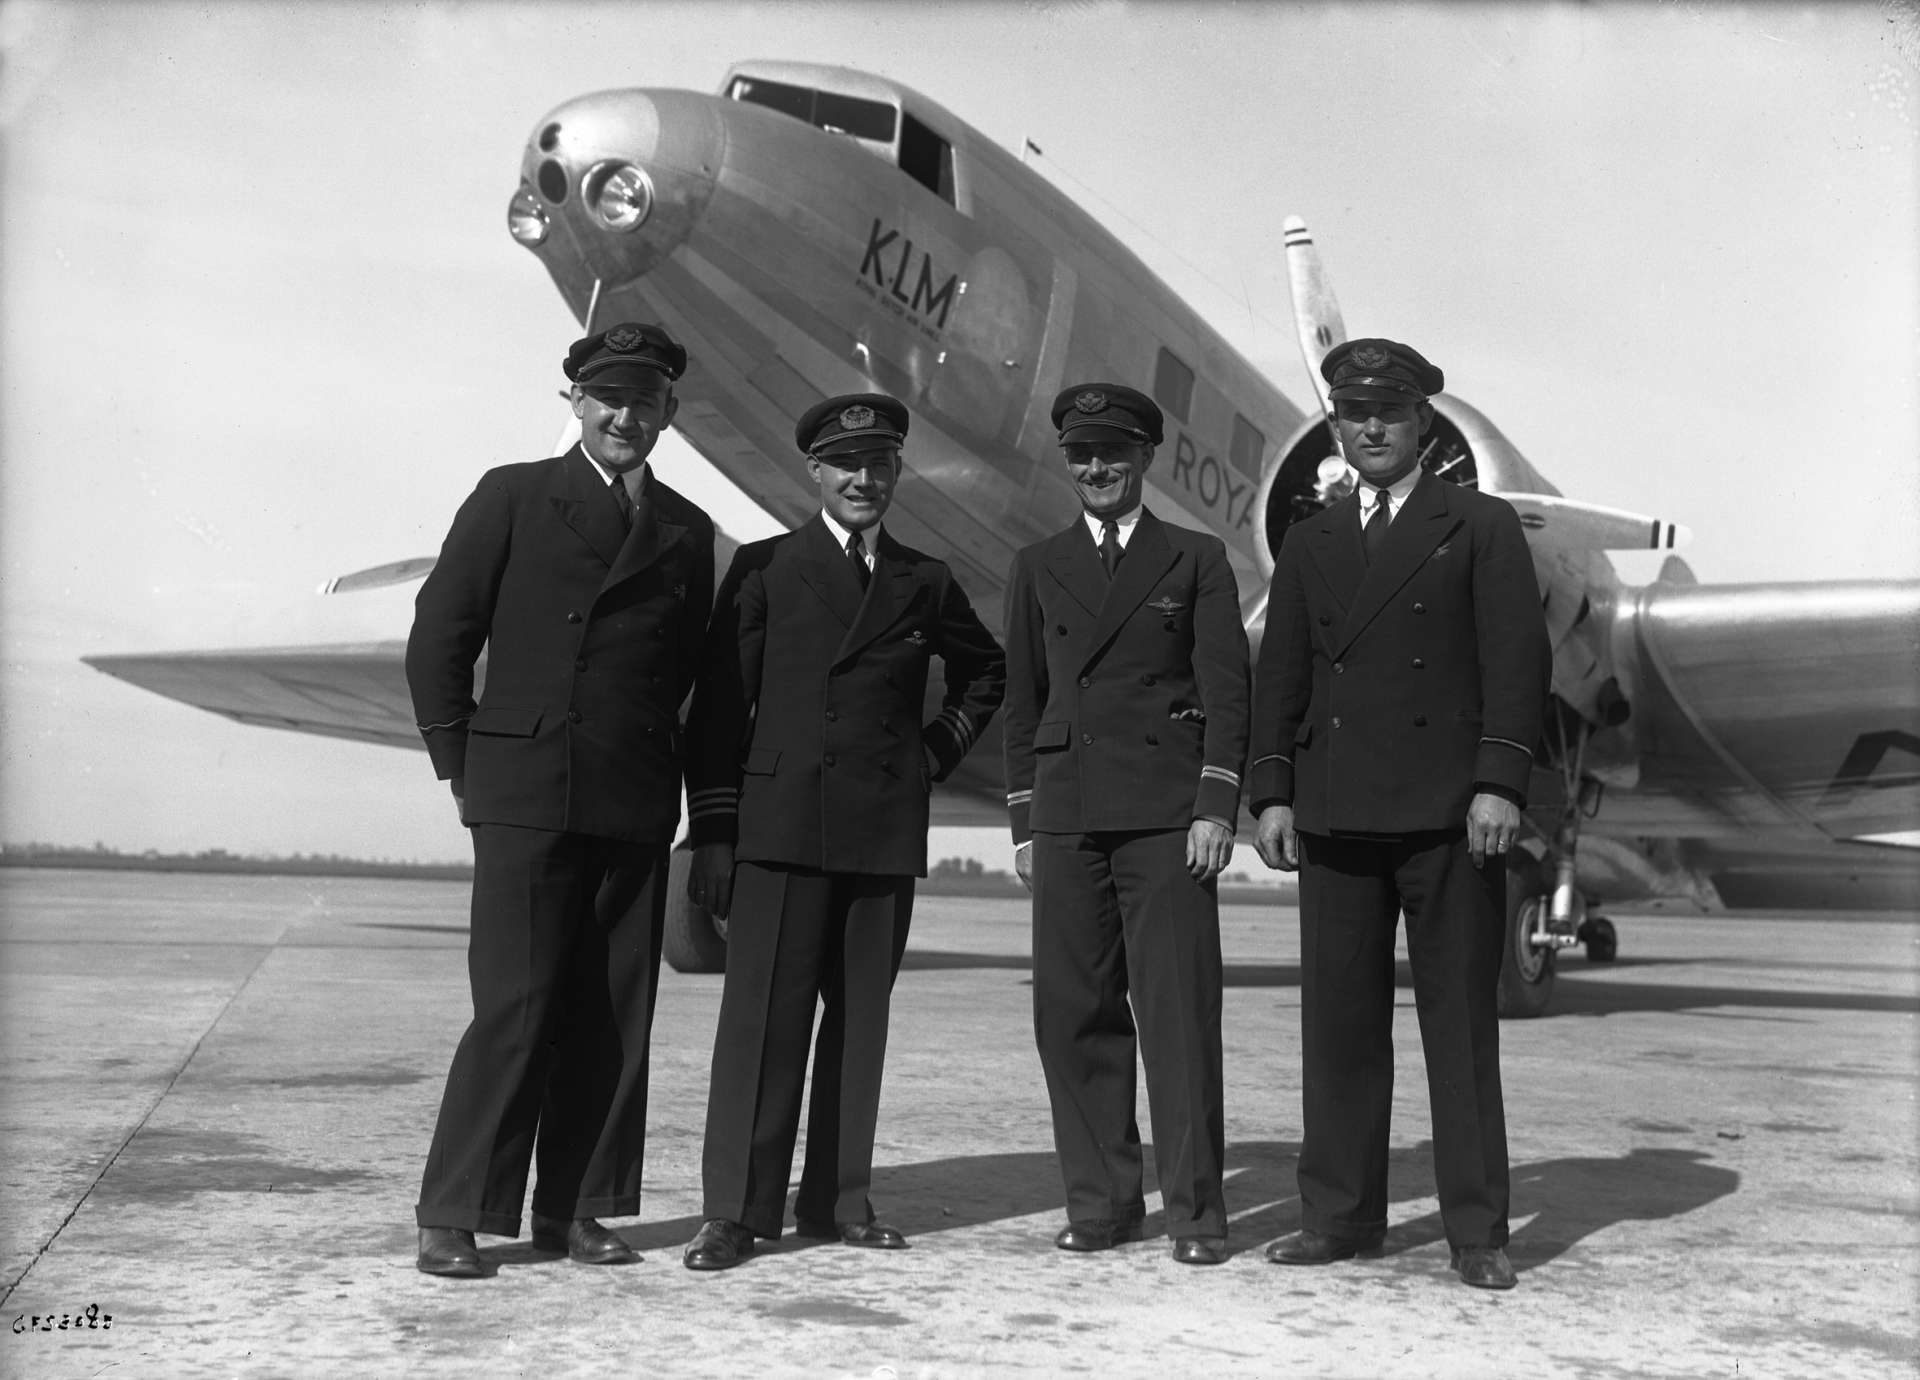 Crew of the legendary Uiver airplane, 1934 (KLM).